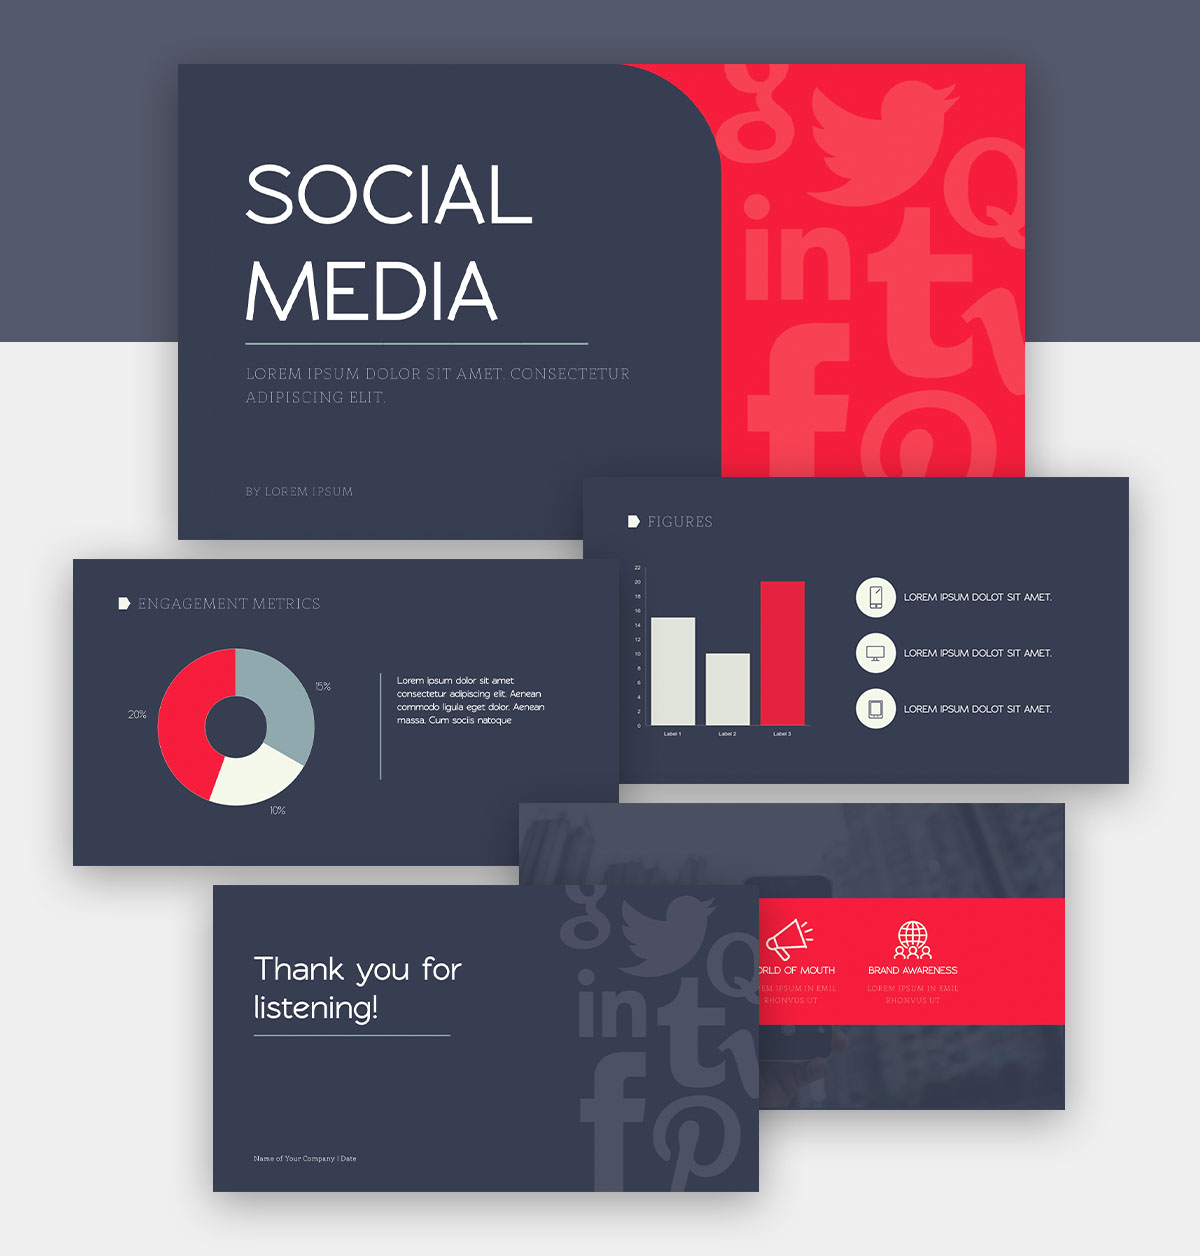 powerpoint infographic - social media presentation template